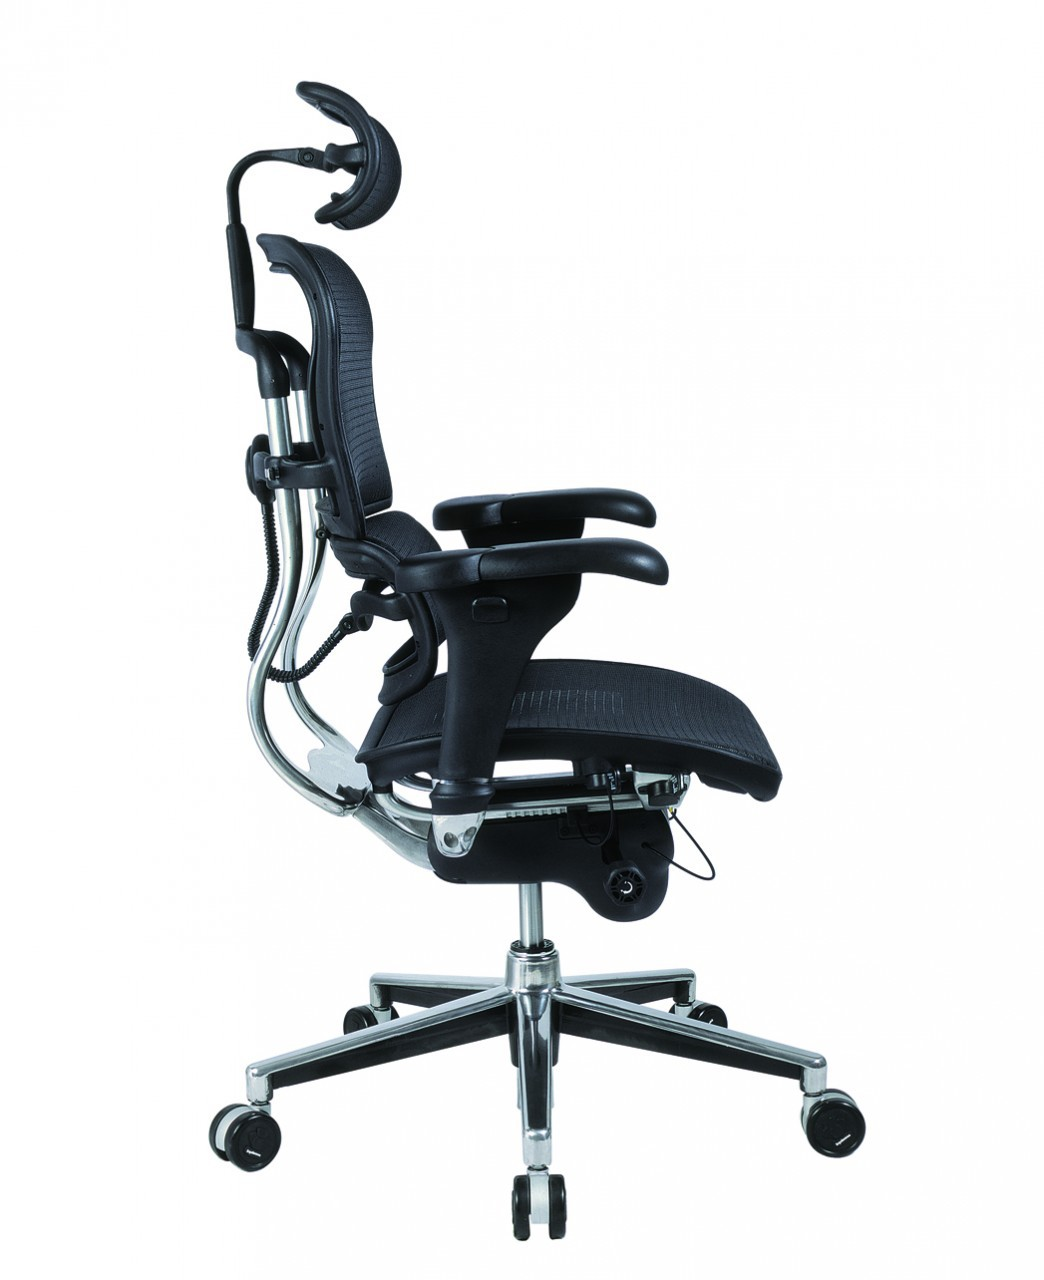 Ergo Chair 10 Best Pc Gaming Chairs In 2015 Gamers Decide